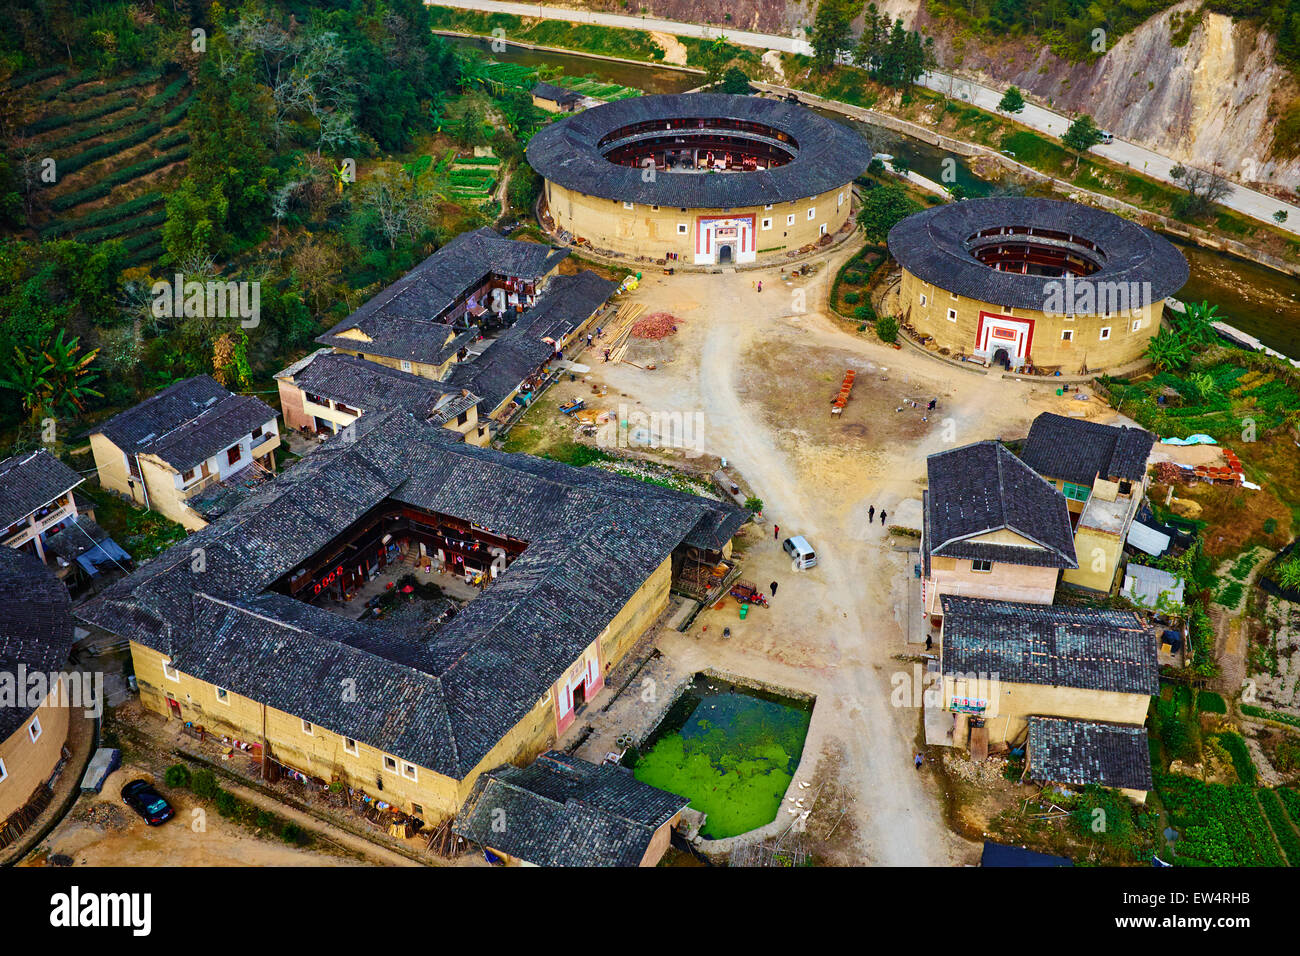 China, Fujian province, Hekeng village, Tulou mud house. well known as the Hakka Tulou region, in Fujian. In 2008, Stock Photo